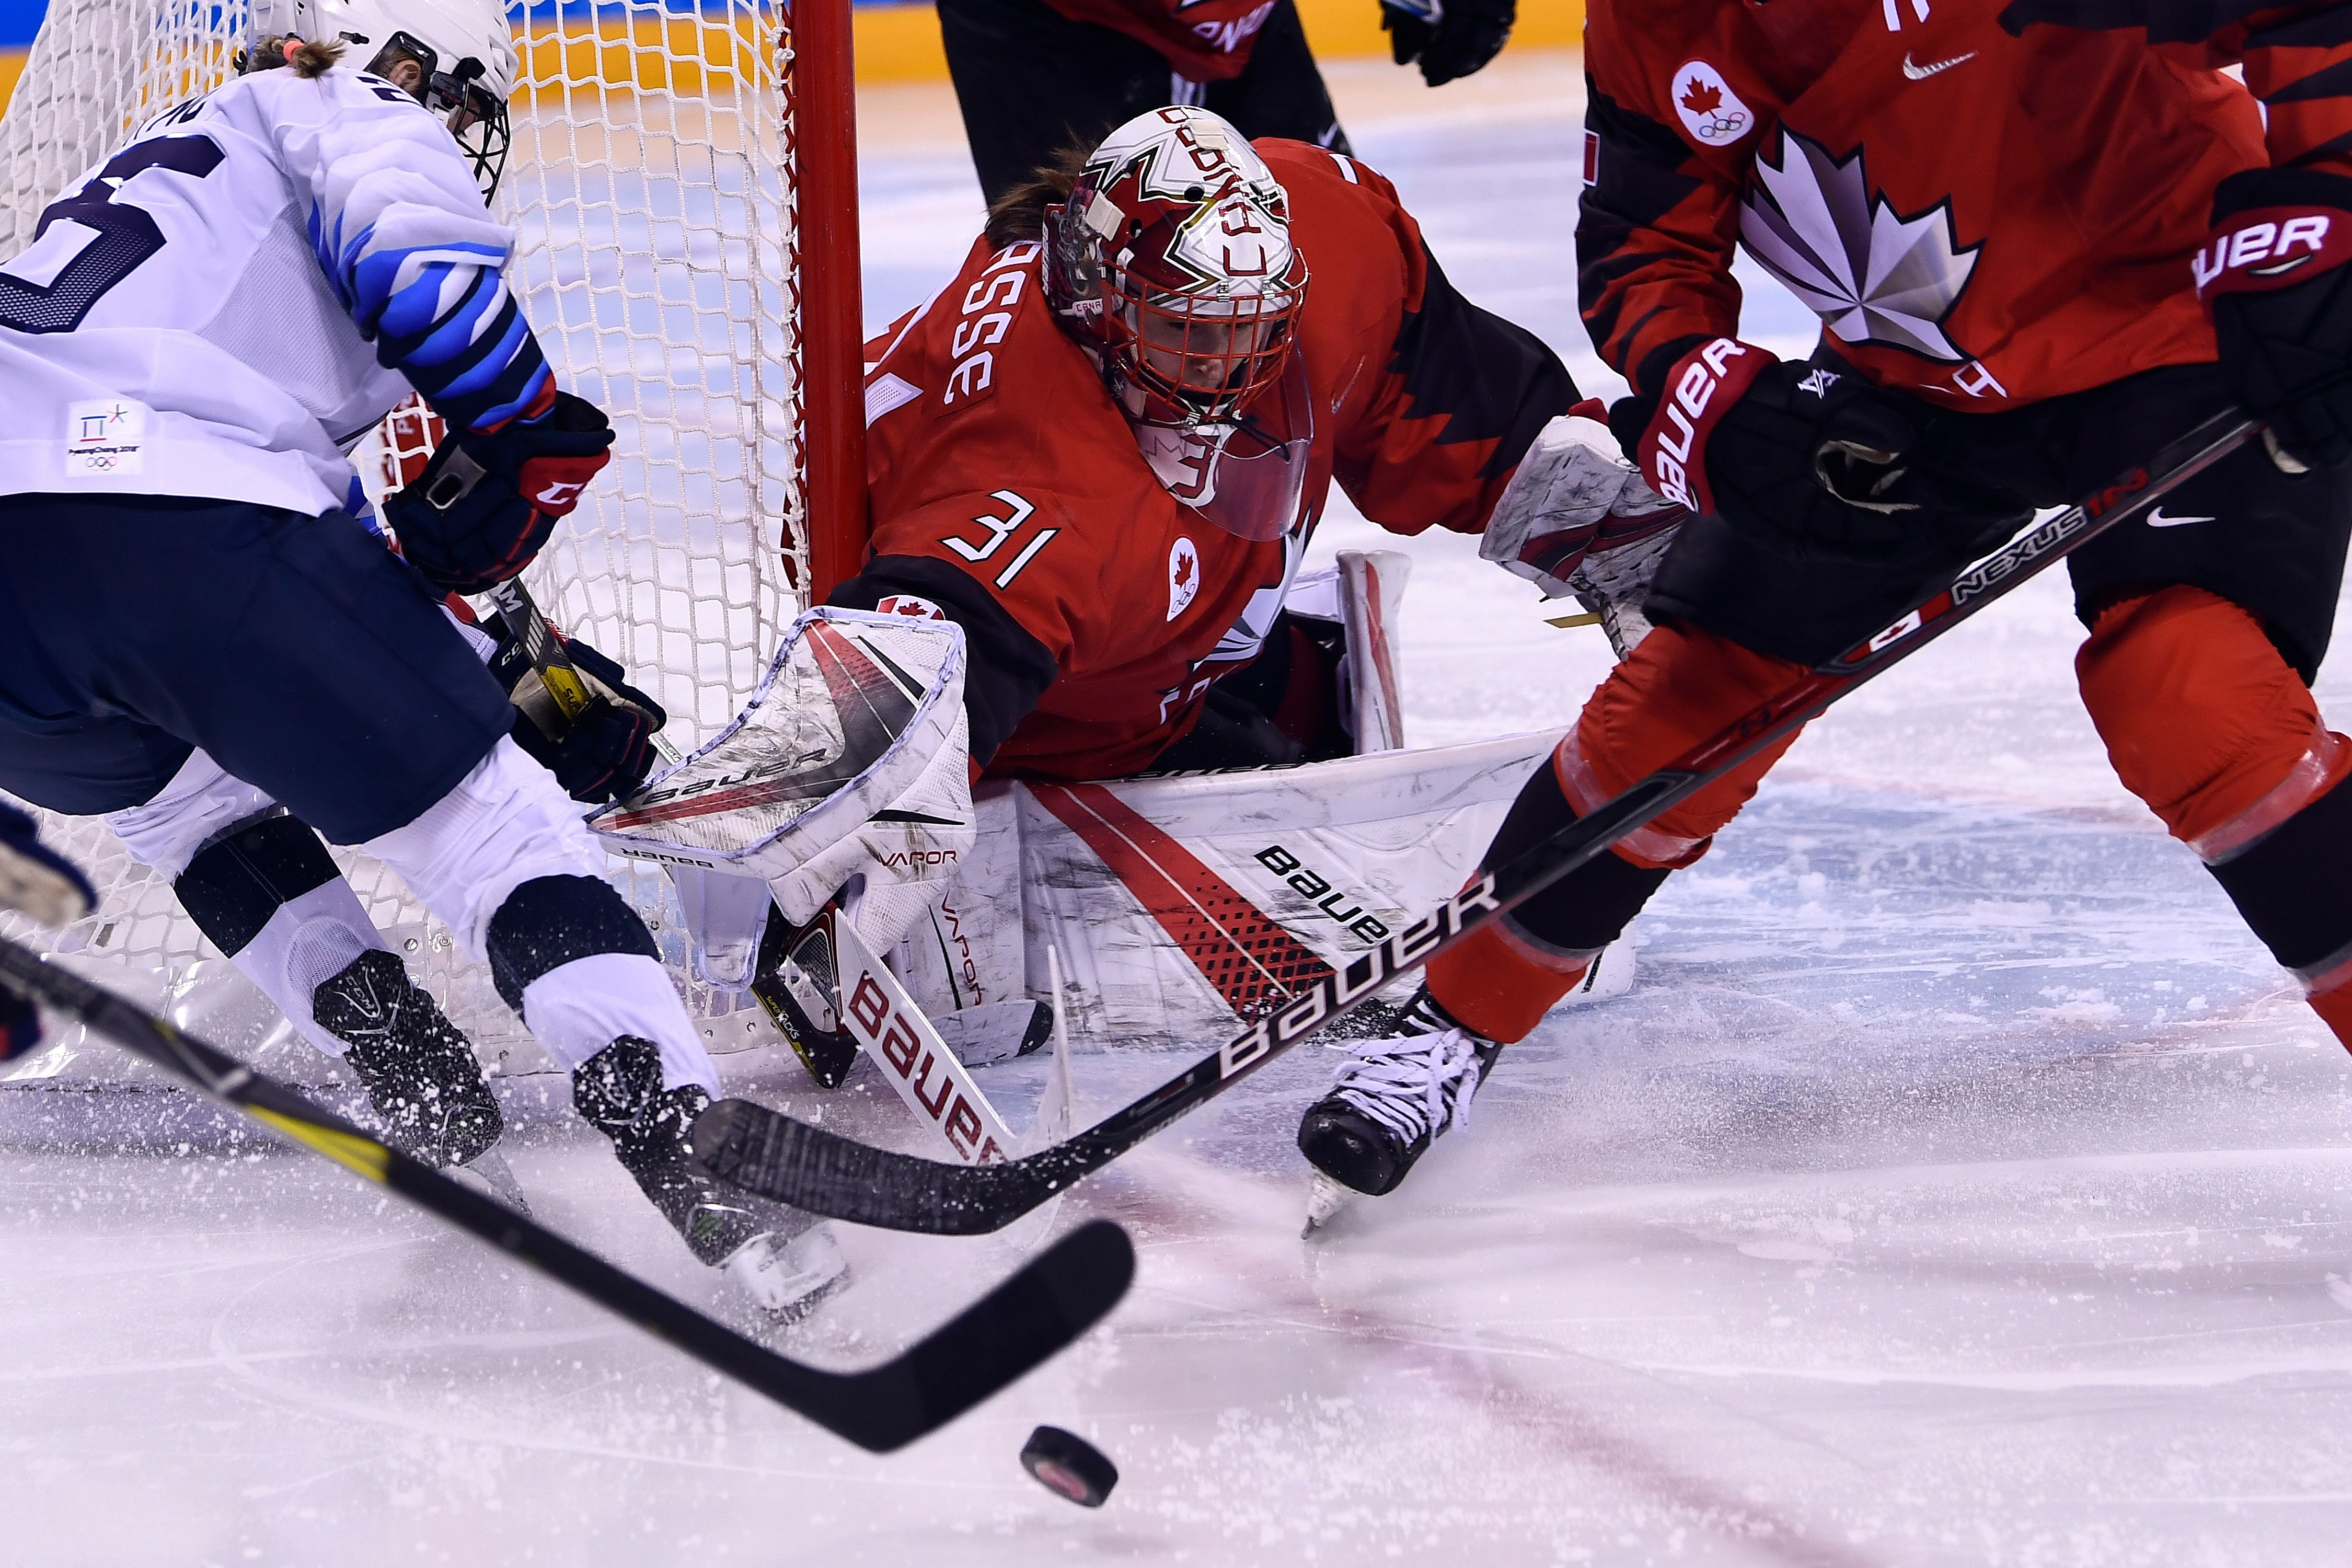 Canada's Genevieve Lacasse (C) defends her goal in the women's preliminary round ice hockey match between the US and Canada